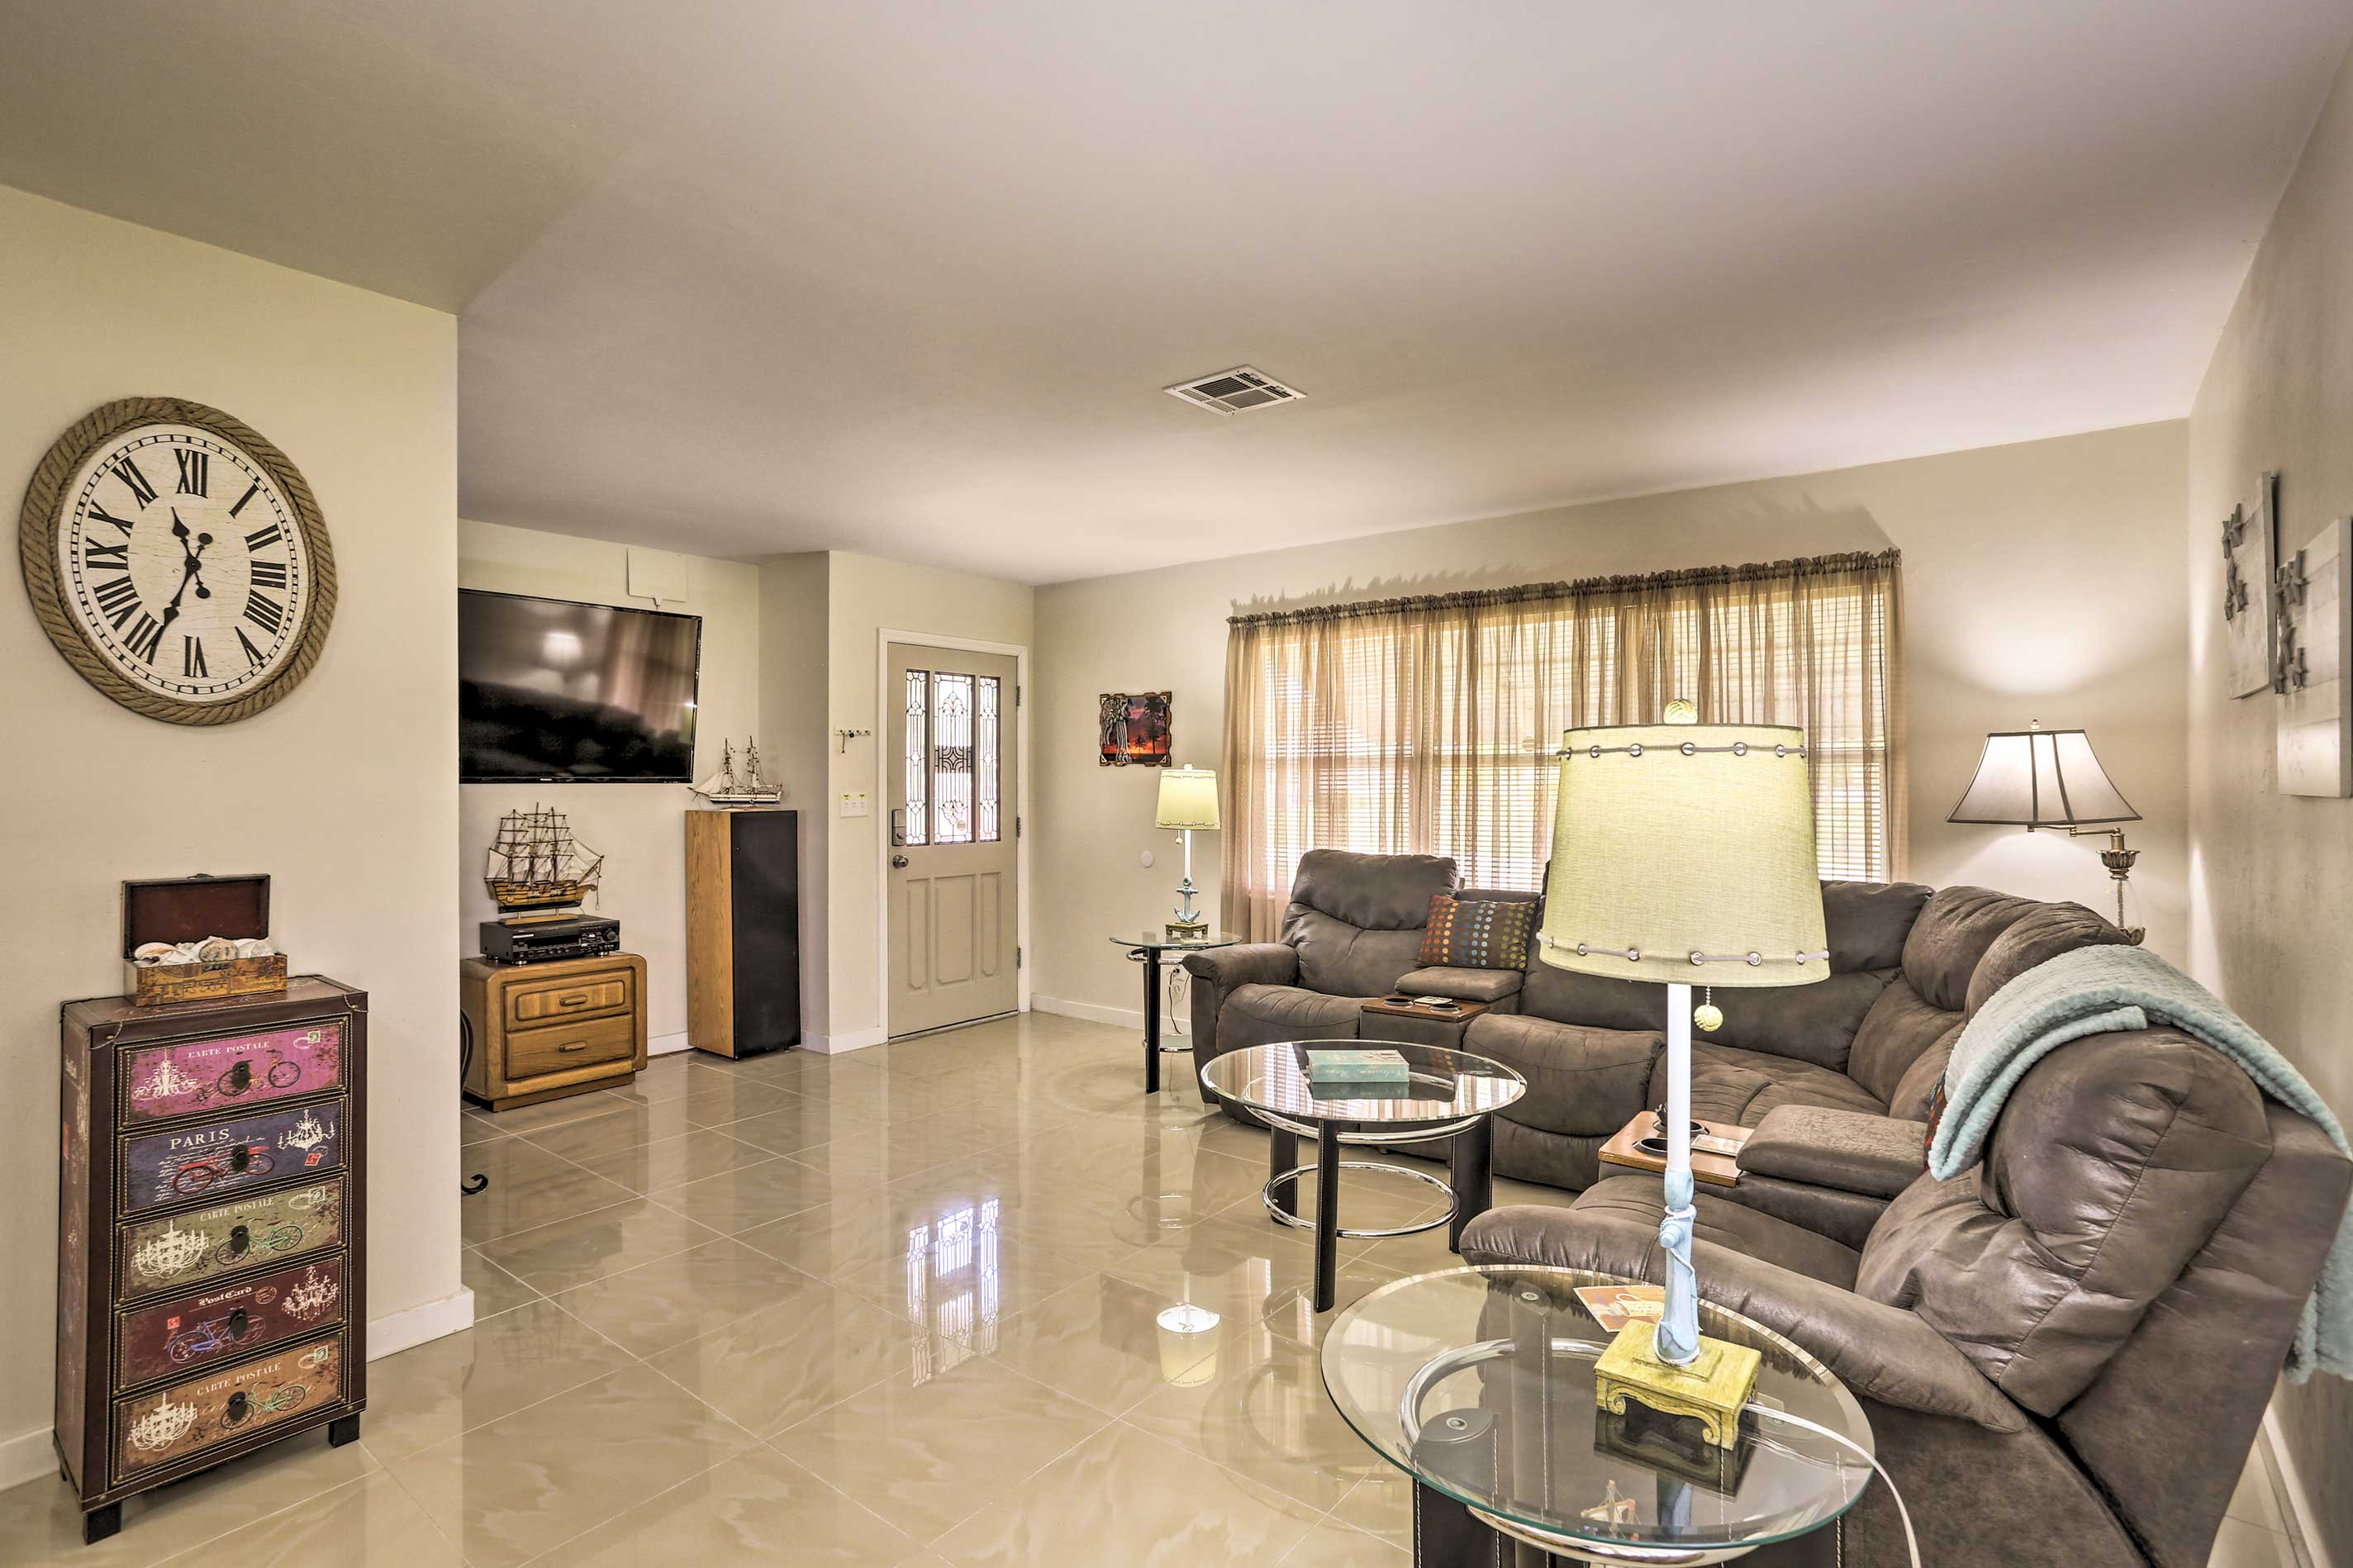 The interior is furnished with comfort and style in mind.